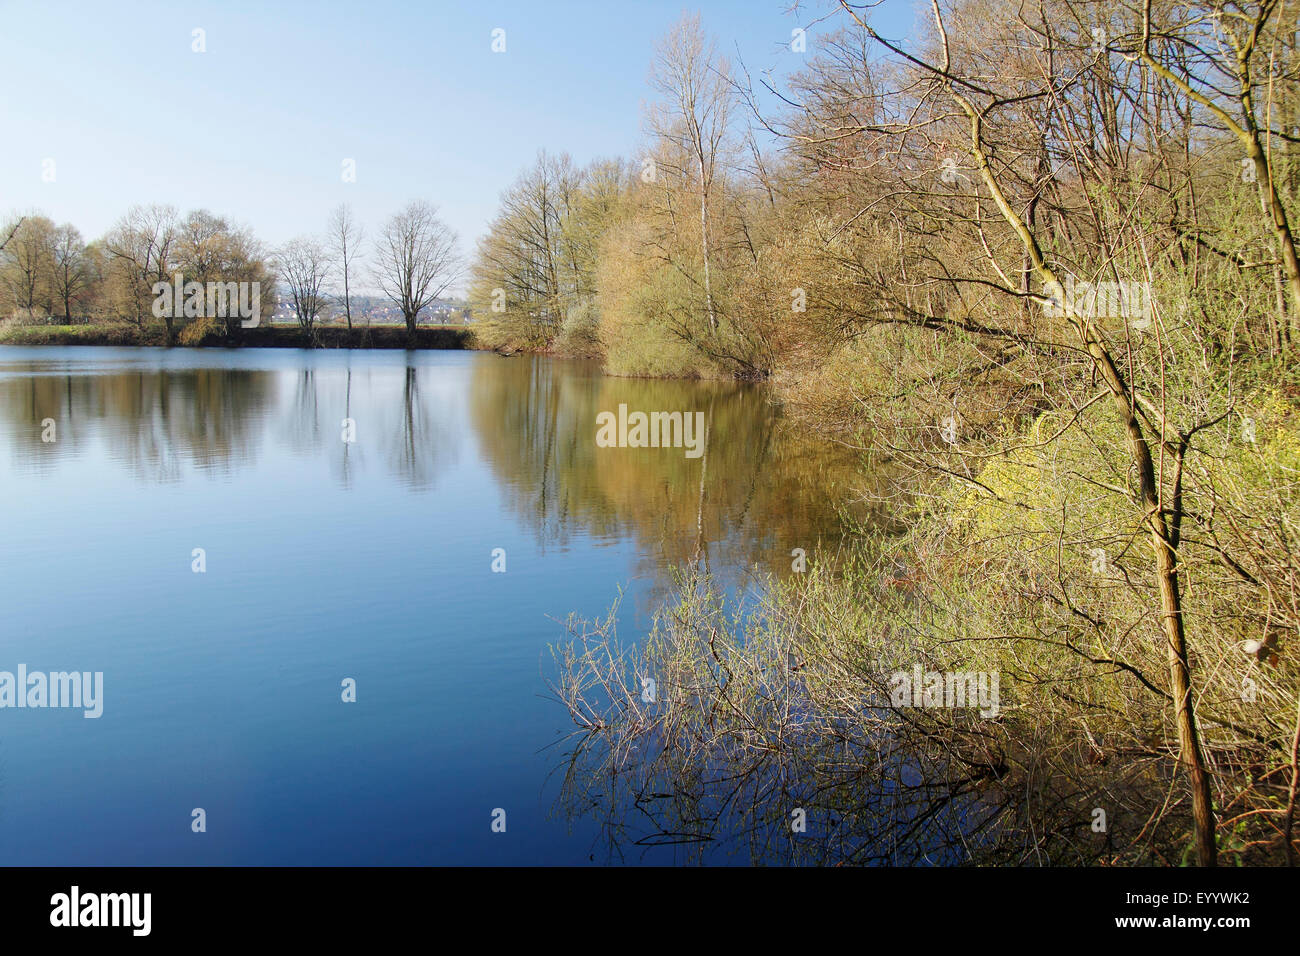 scrubby lakeside in springtime, Germany, Baden-Wuerttemberg, Offenburg - Stock Image